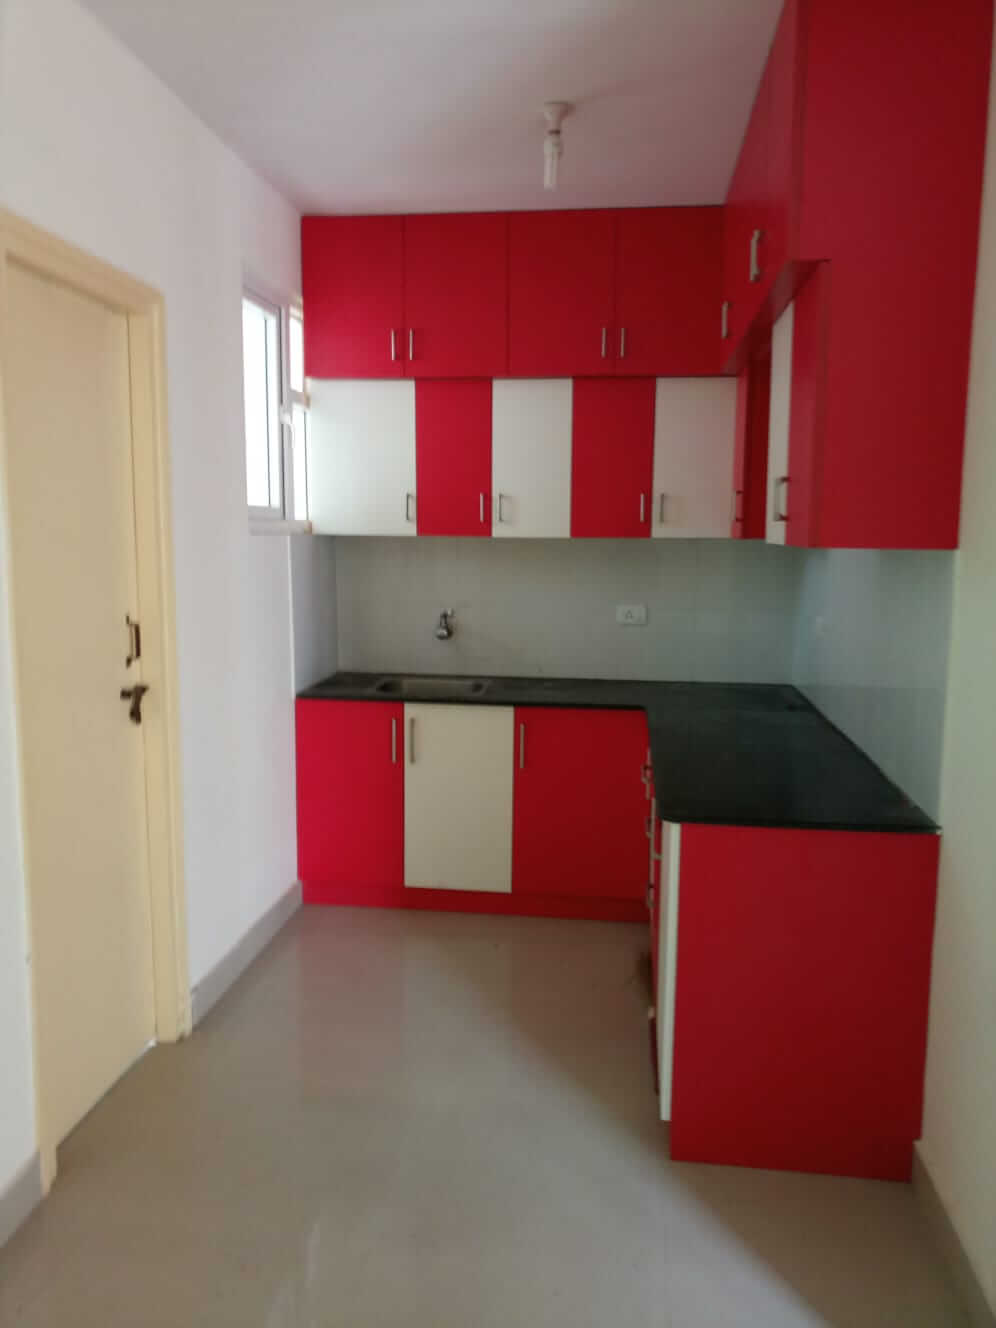 3 BHK Apartment / Flat for Rent 950 Sq. Feet at Bangalore